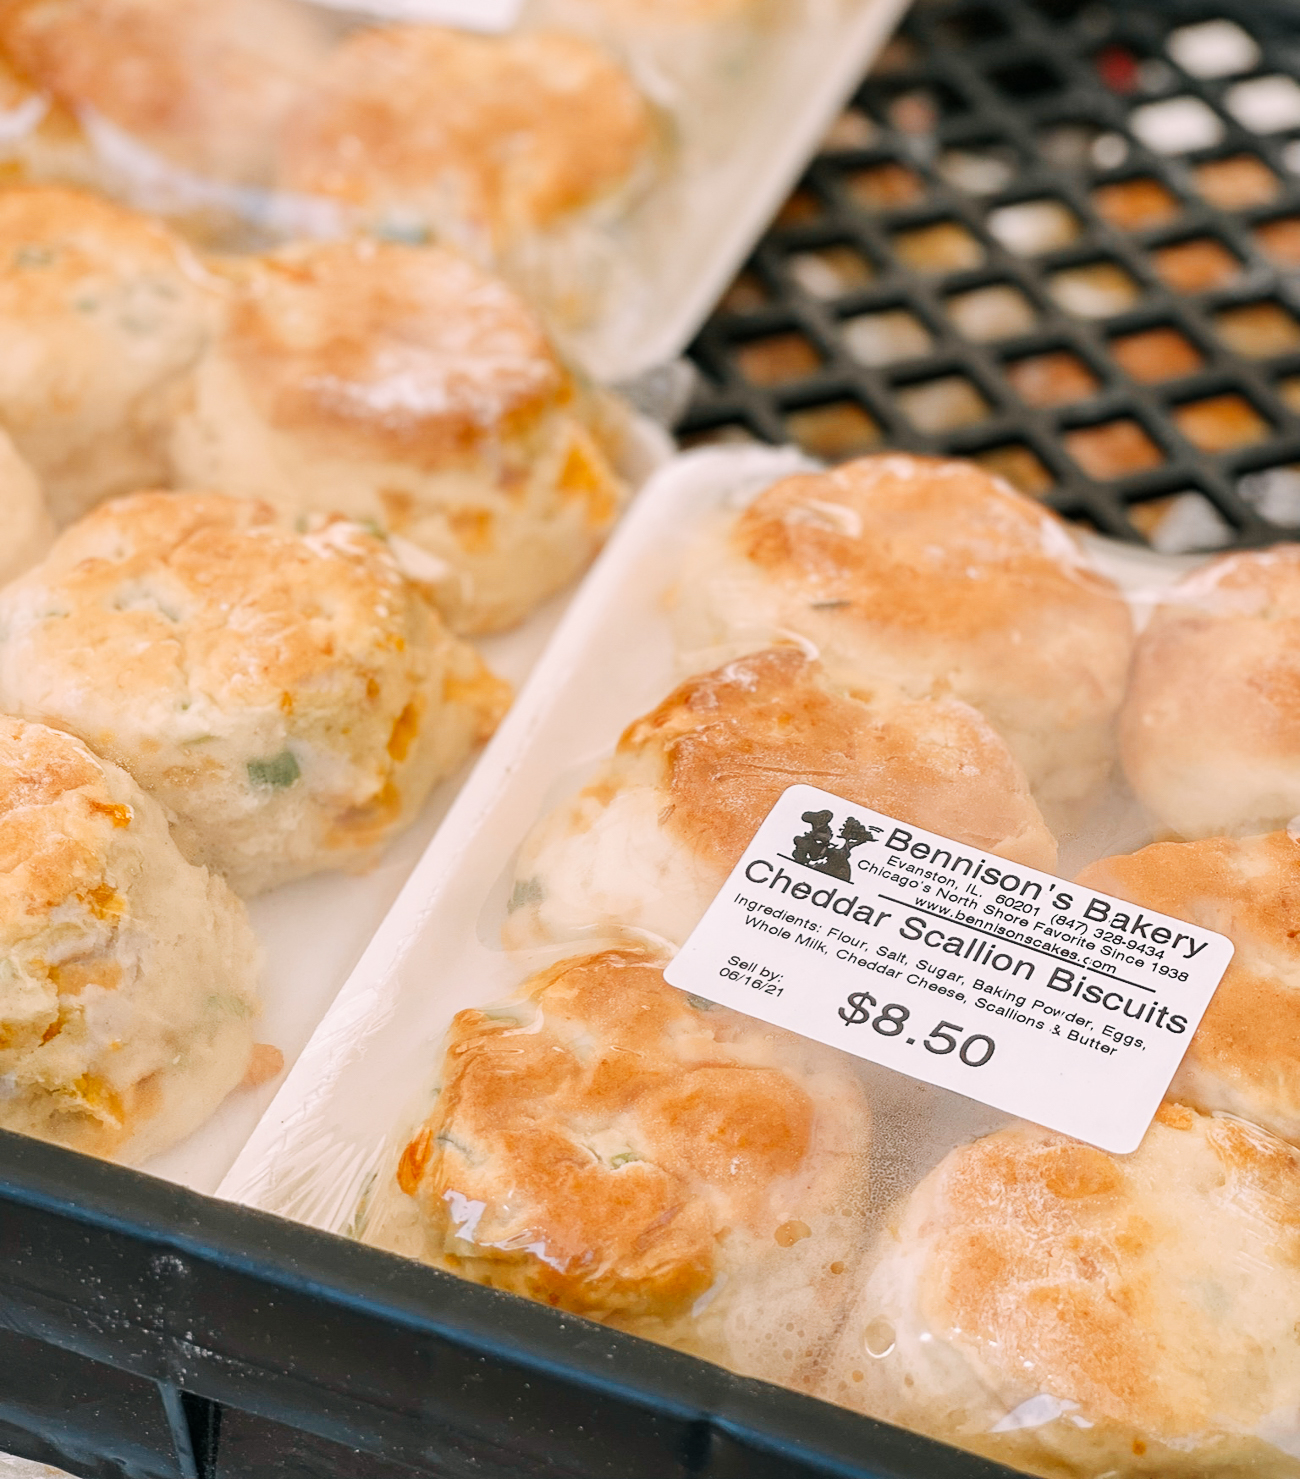 Biscuits for sale from Bennison's Bakery at farmer's market in Chicago